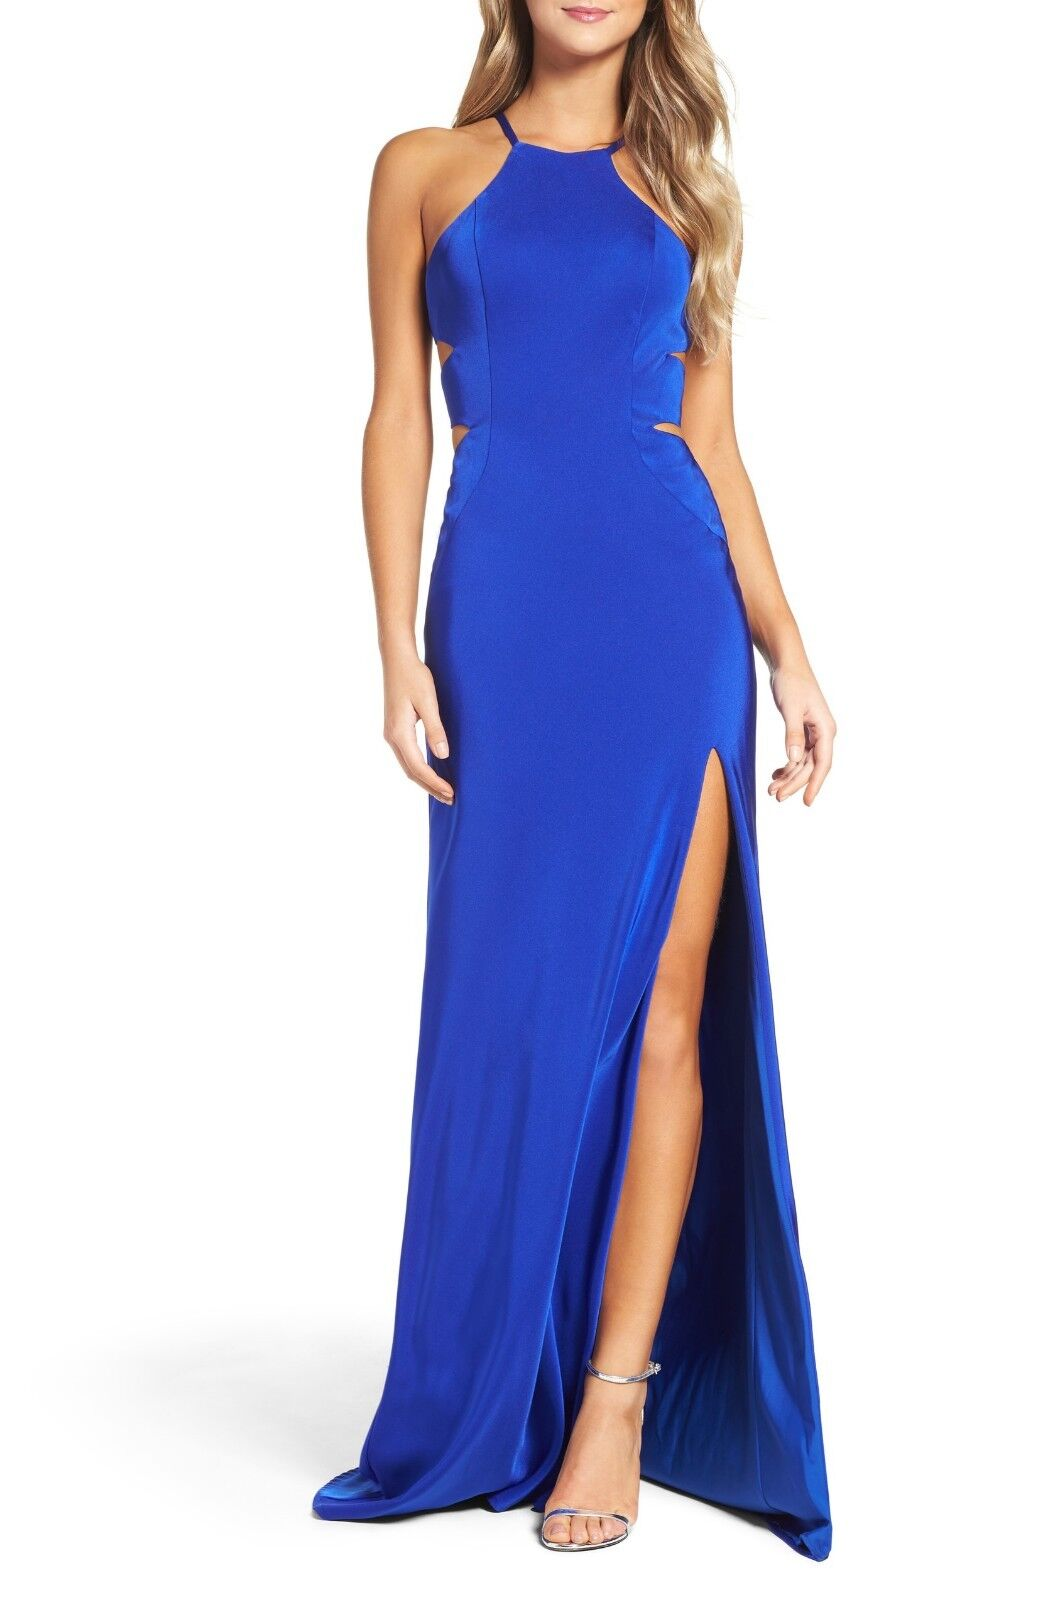 LA FEMME 24380 Sapphire bluee Strappy Sexy Cutout Satin Mermaid High Slit Gown 4